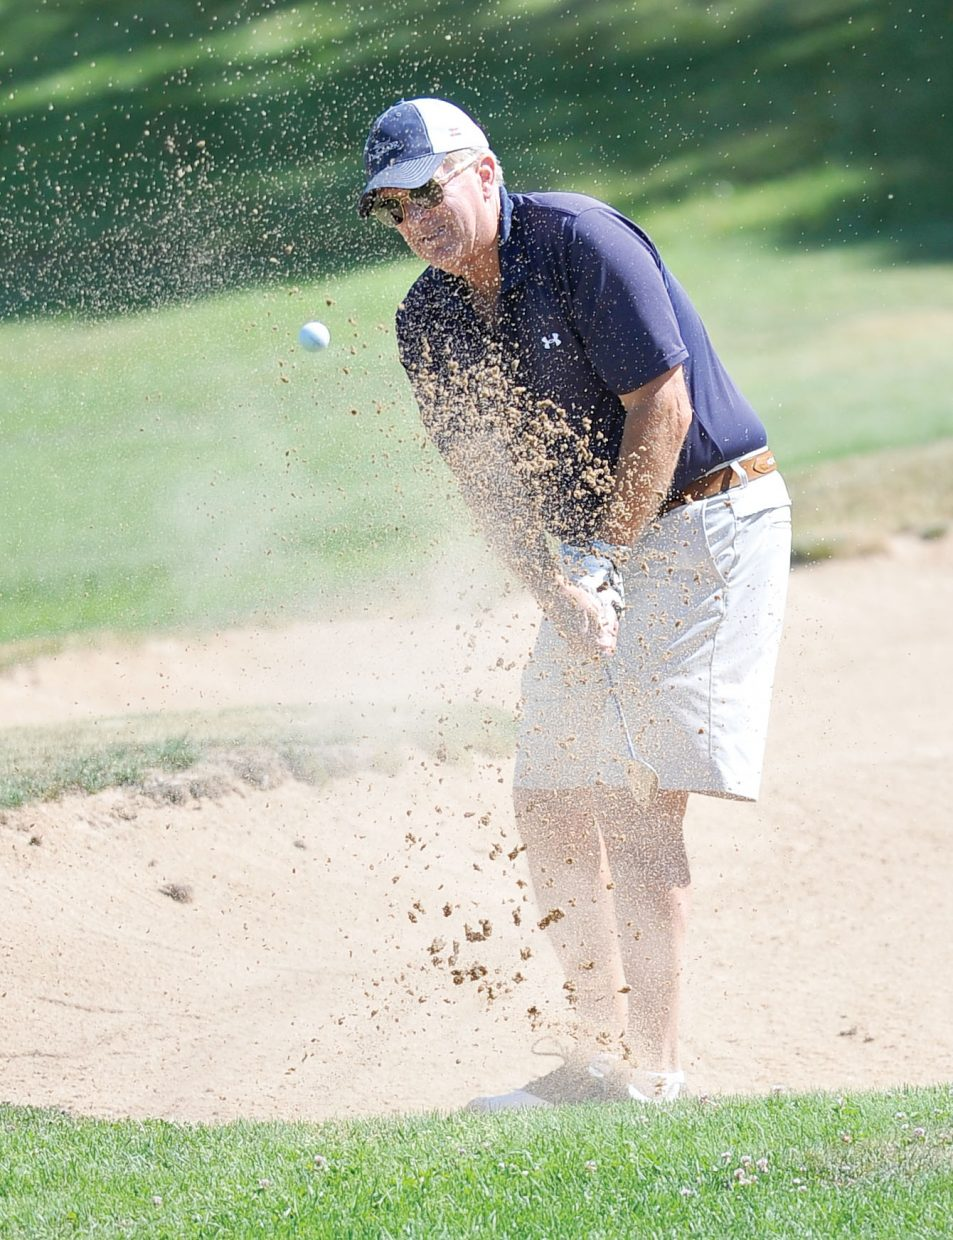 Bruce Hannon hits out of the sand at the 13th annual Rally for the Cure golf tournament at the Rollingstone Ranch Golf Club.